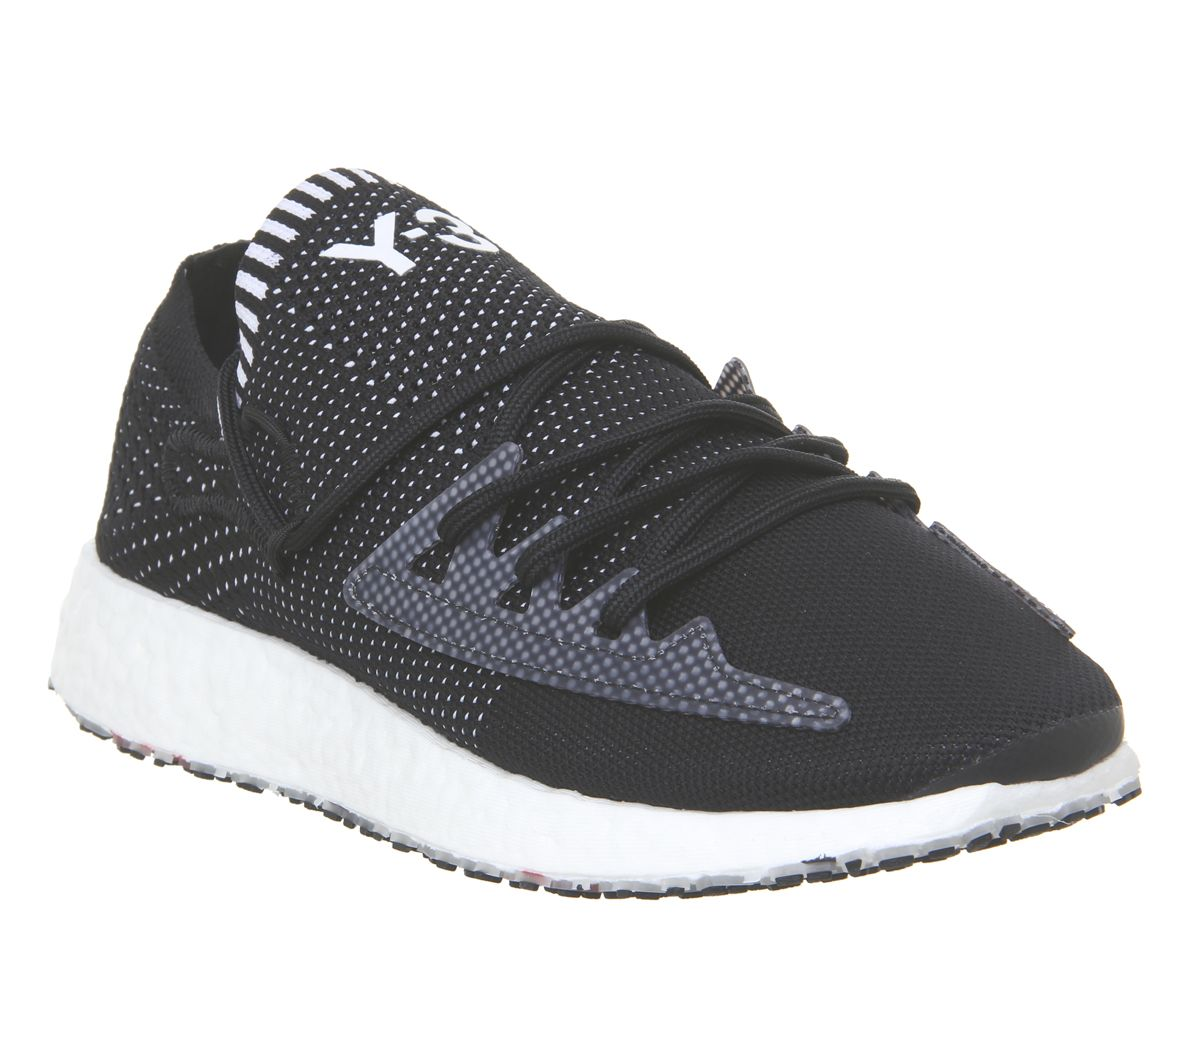 8daf1a39816e2 adidas Y3 Y3 Raito Racer Trainers Black White Boost - His trainers